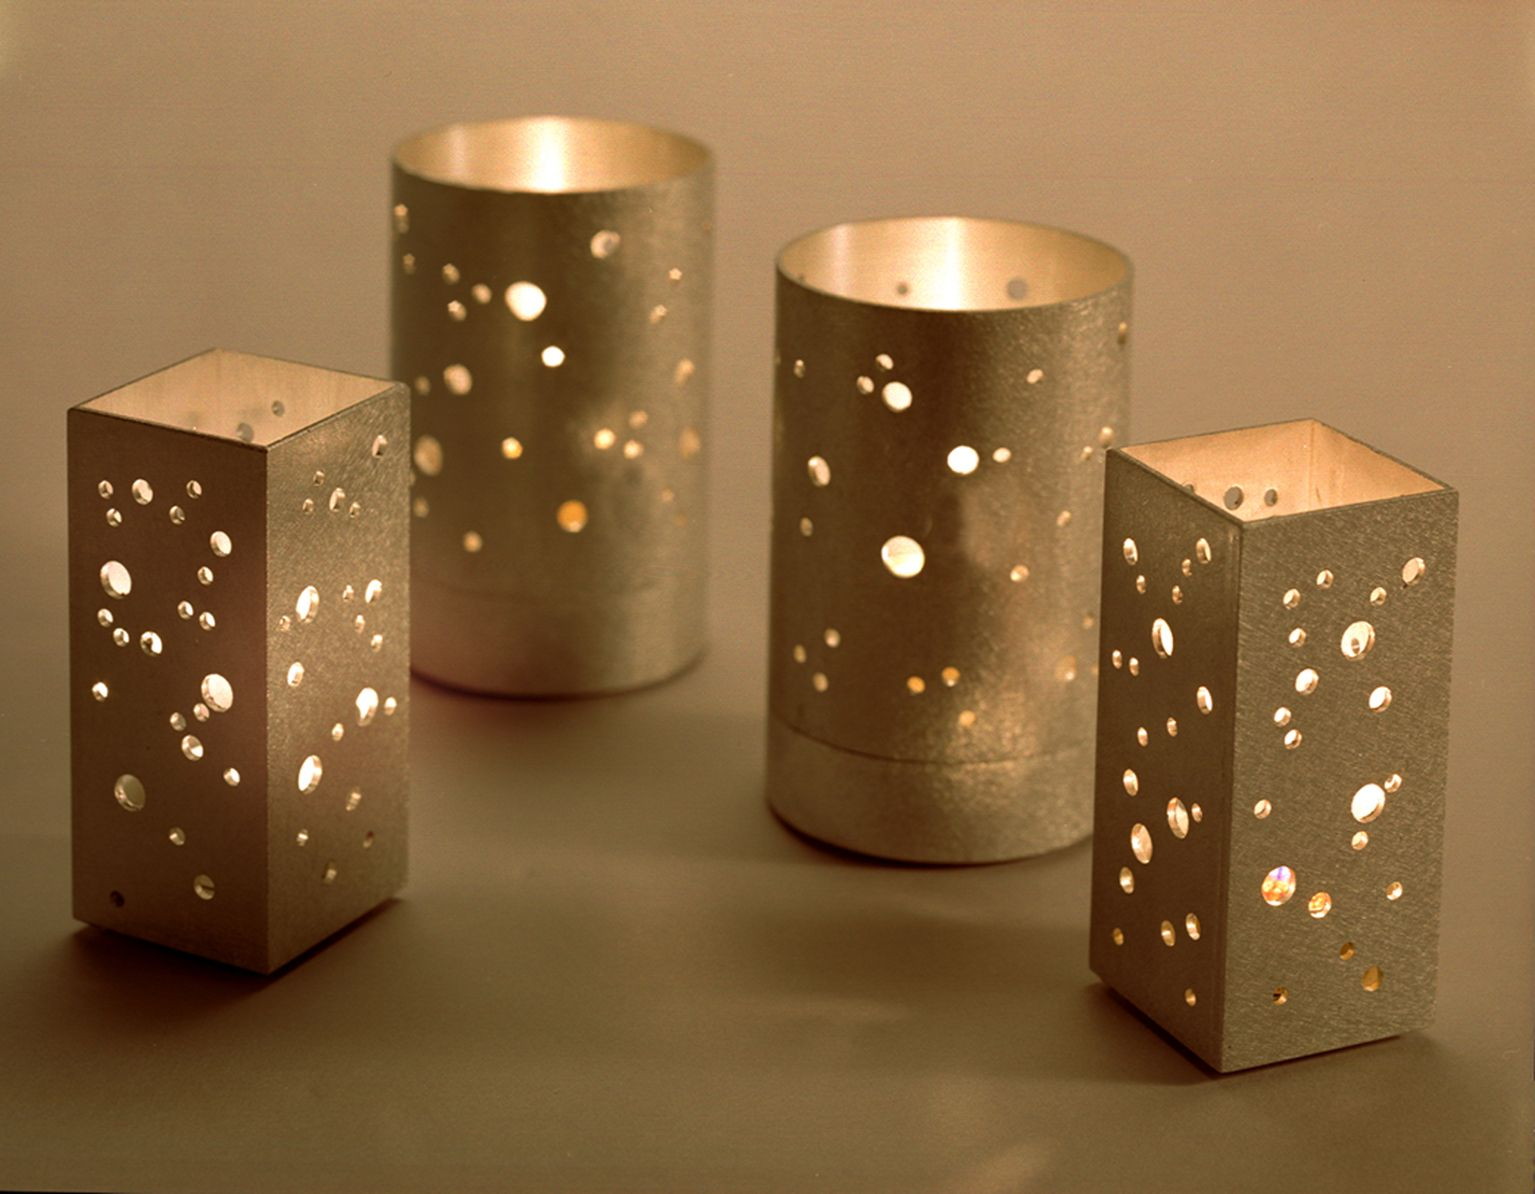 DIY Tin Can Lanterns Hoof Clipart Cachednov Candletins - Cool diy spring candles and candleholders